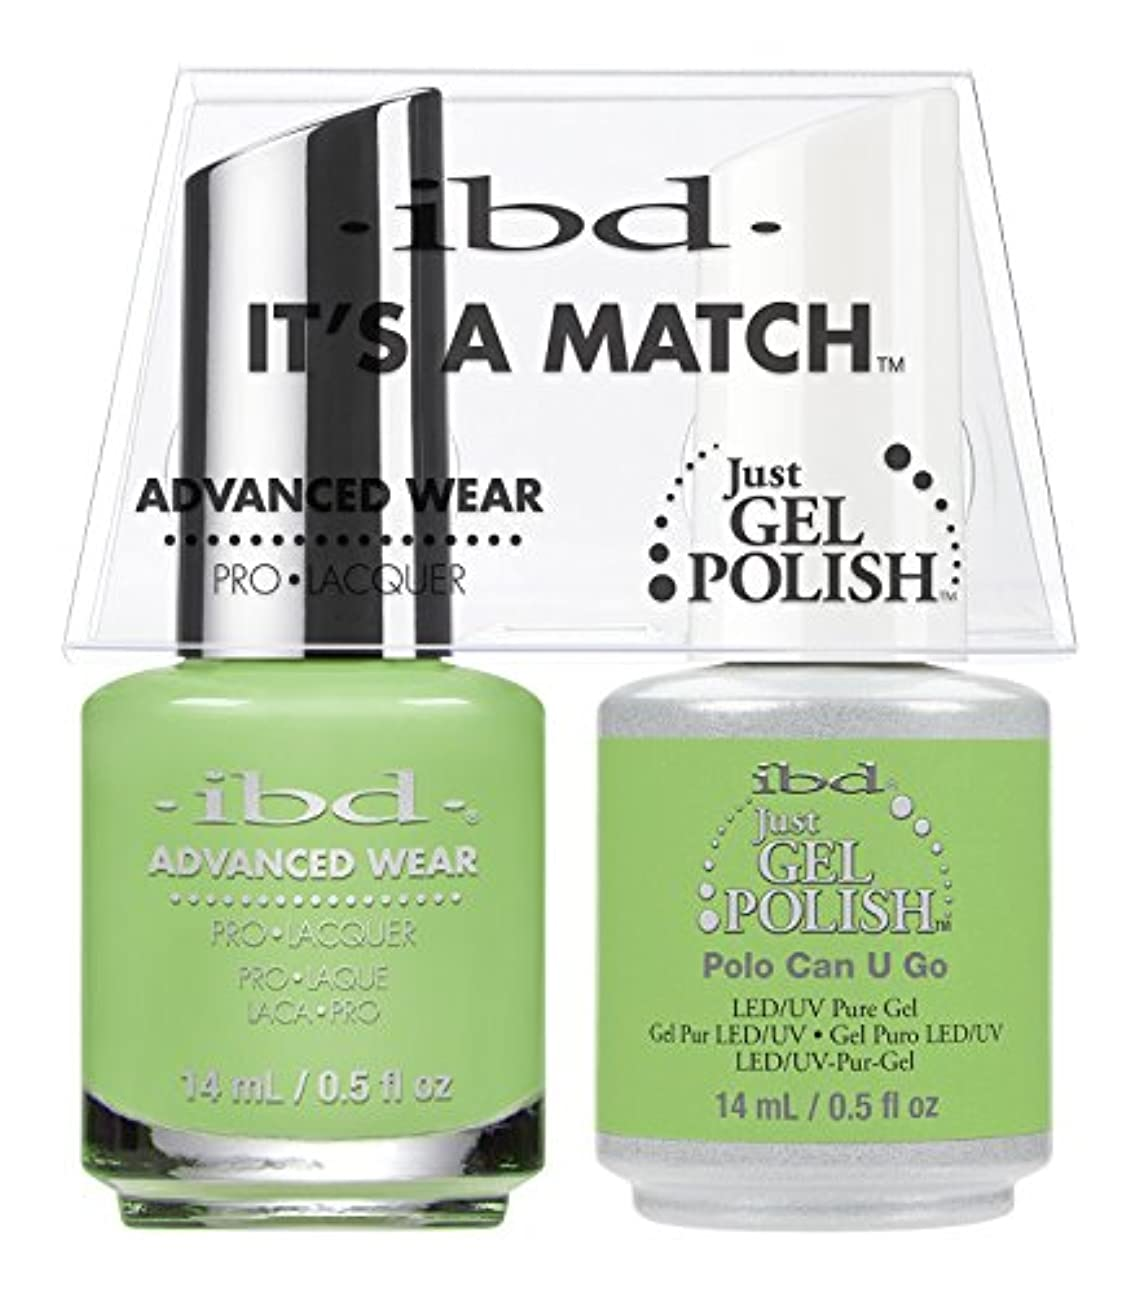 機転アンカー警告ibd - It's A Match -Duo Pack- Polo Can U Go - 14 mL / 0.5 oz Each